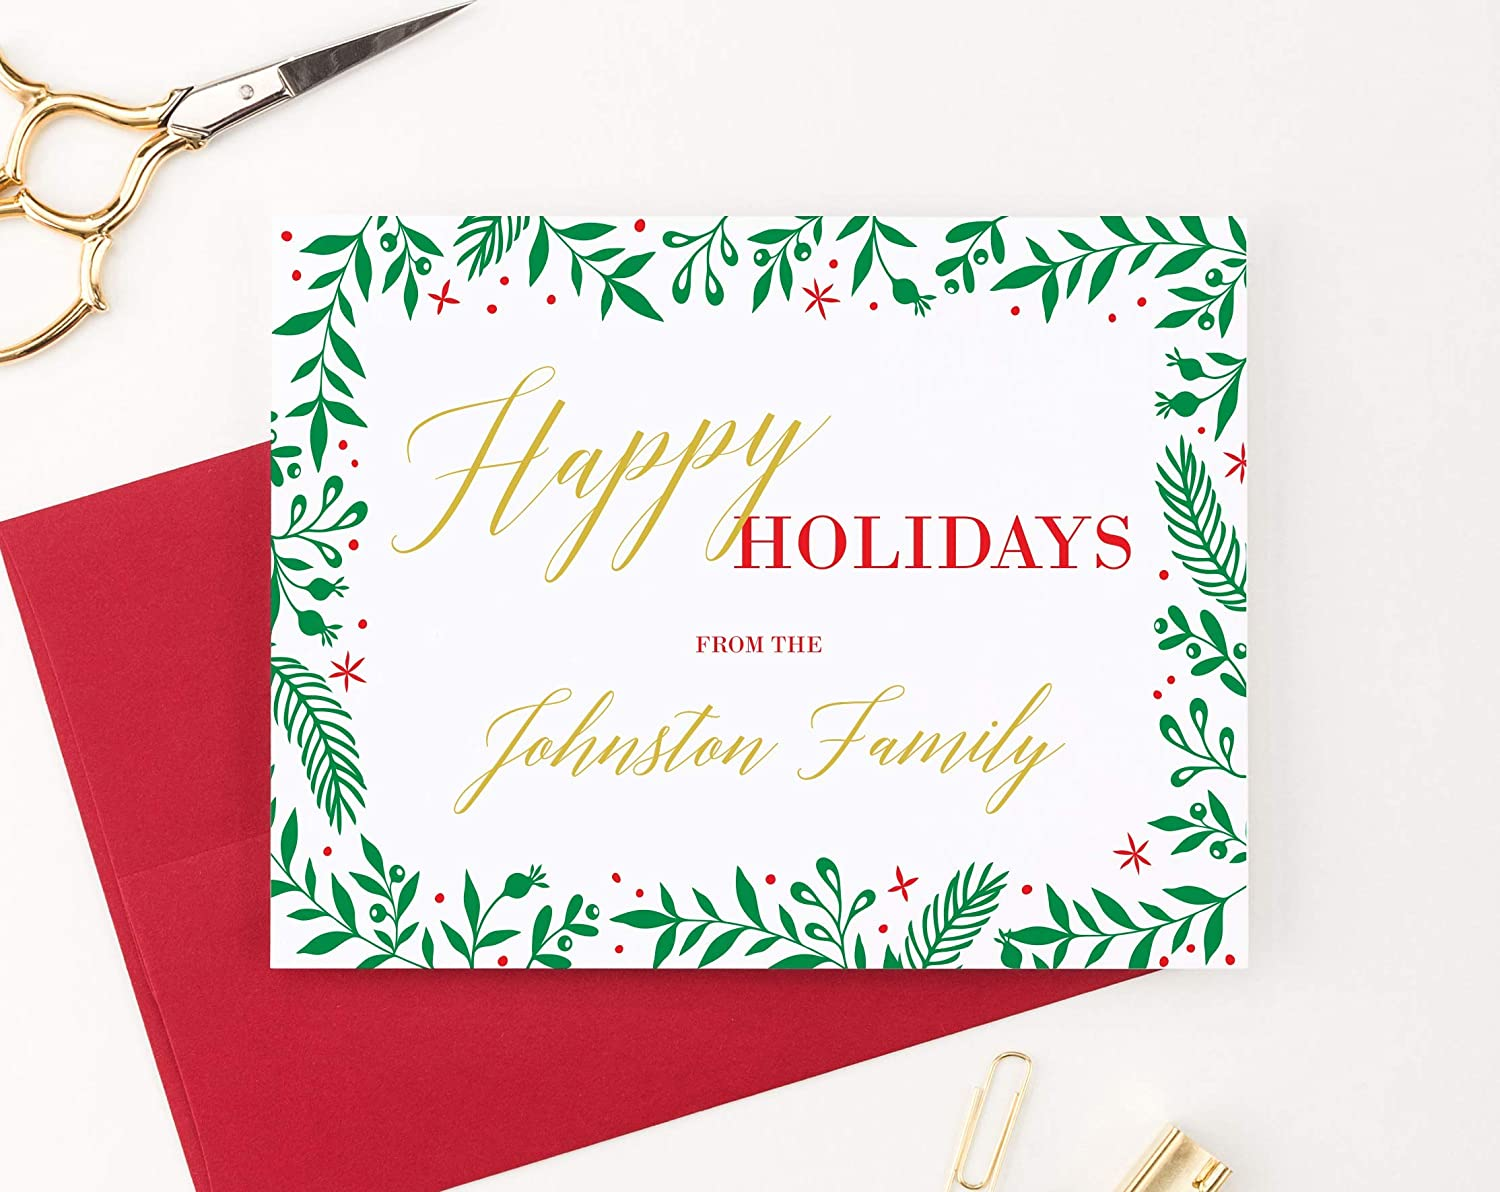 FOLDED, Blank Inside Personalized Happy Holidays Greeting Cards with Envelopes Your choice of Greeting Custom Mistletoe Family Christmas Cards Quantity and Envelope Color